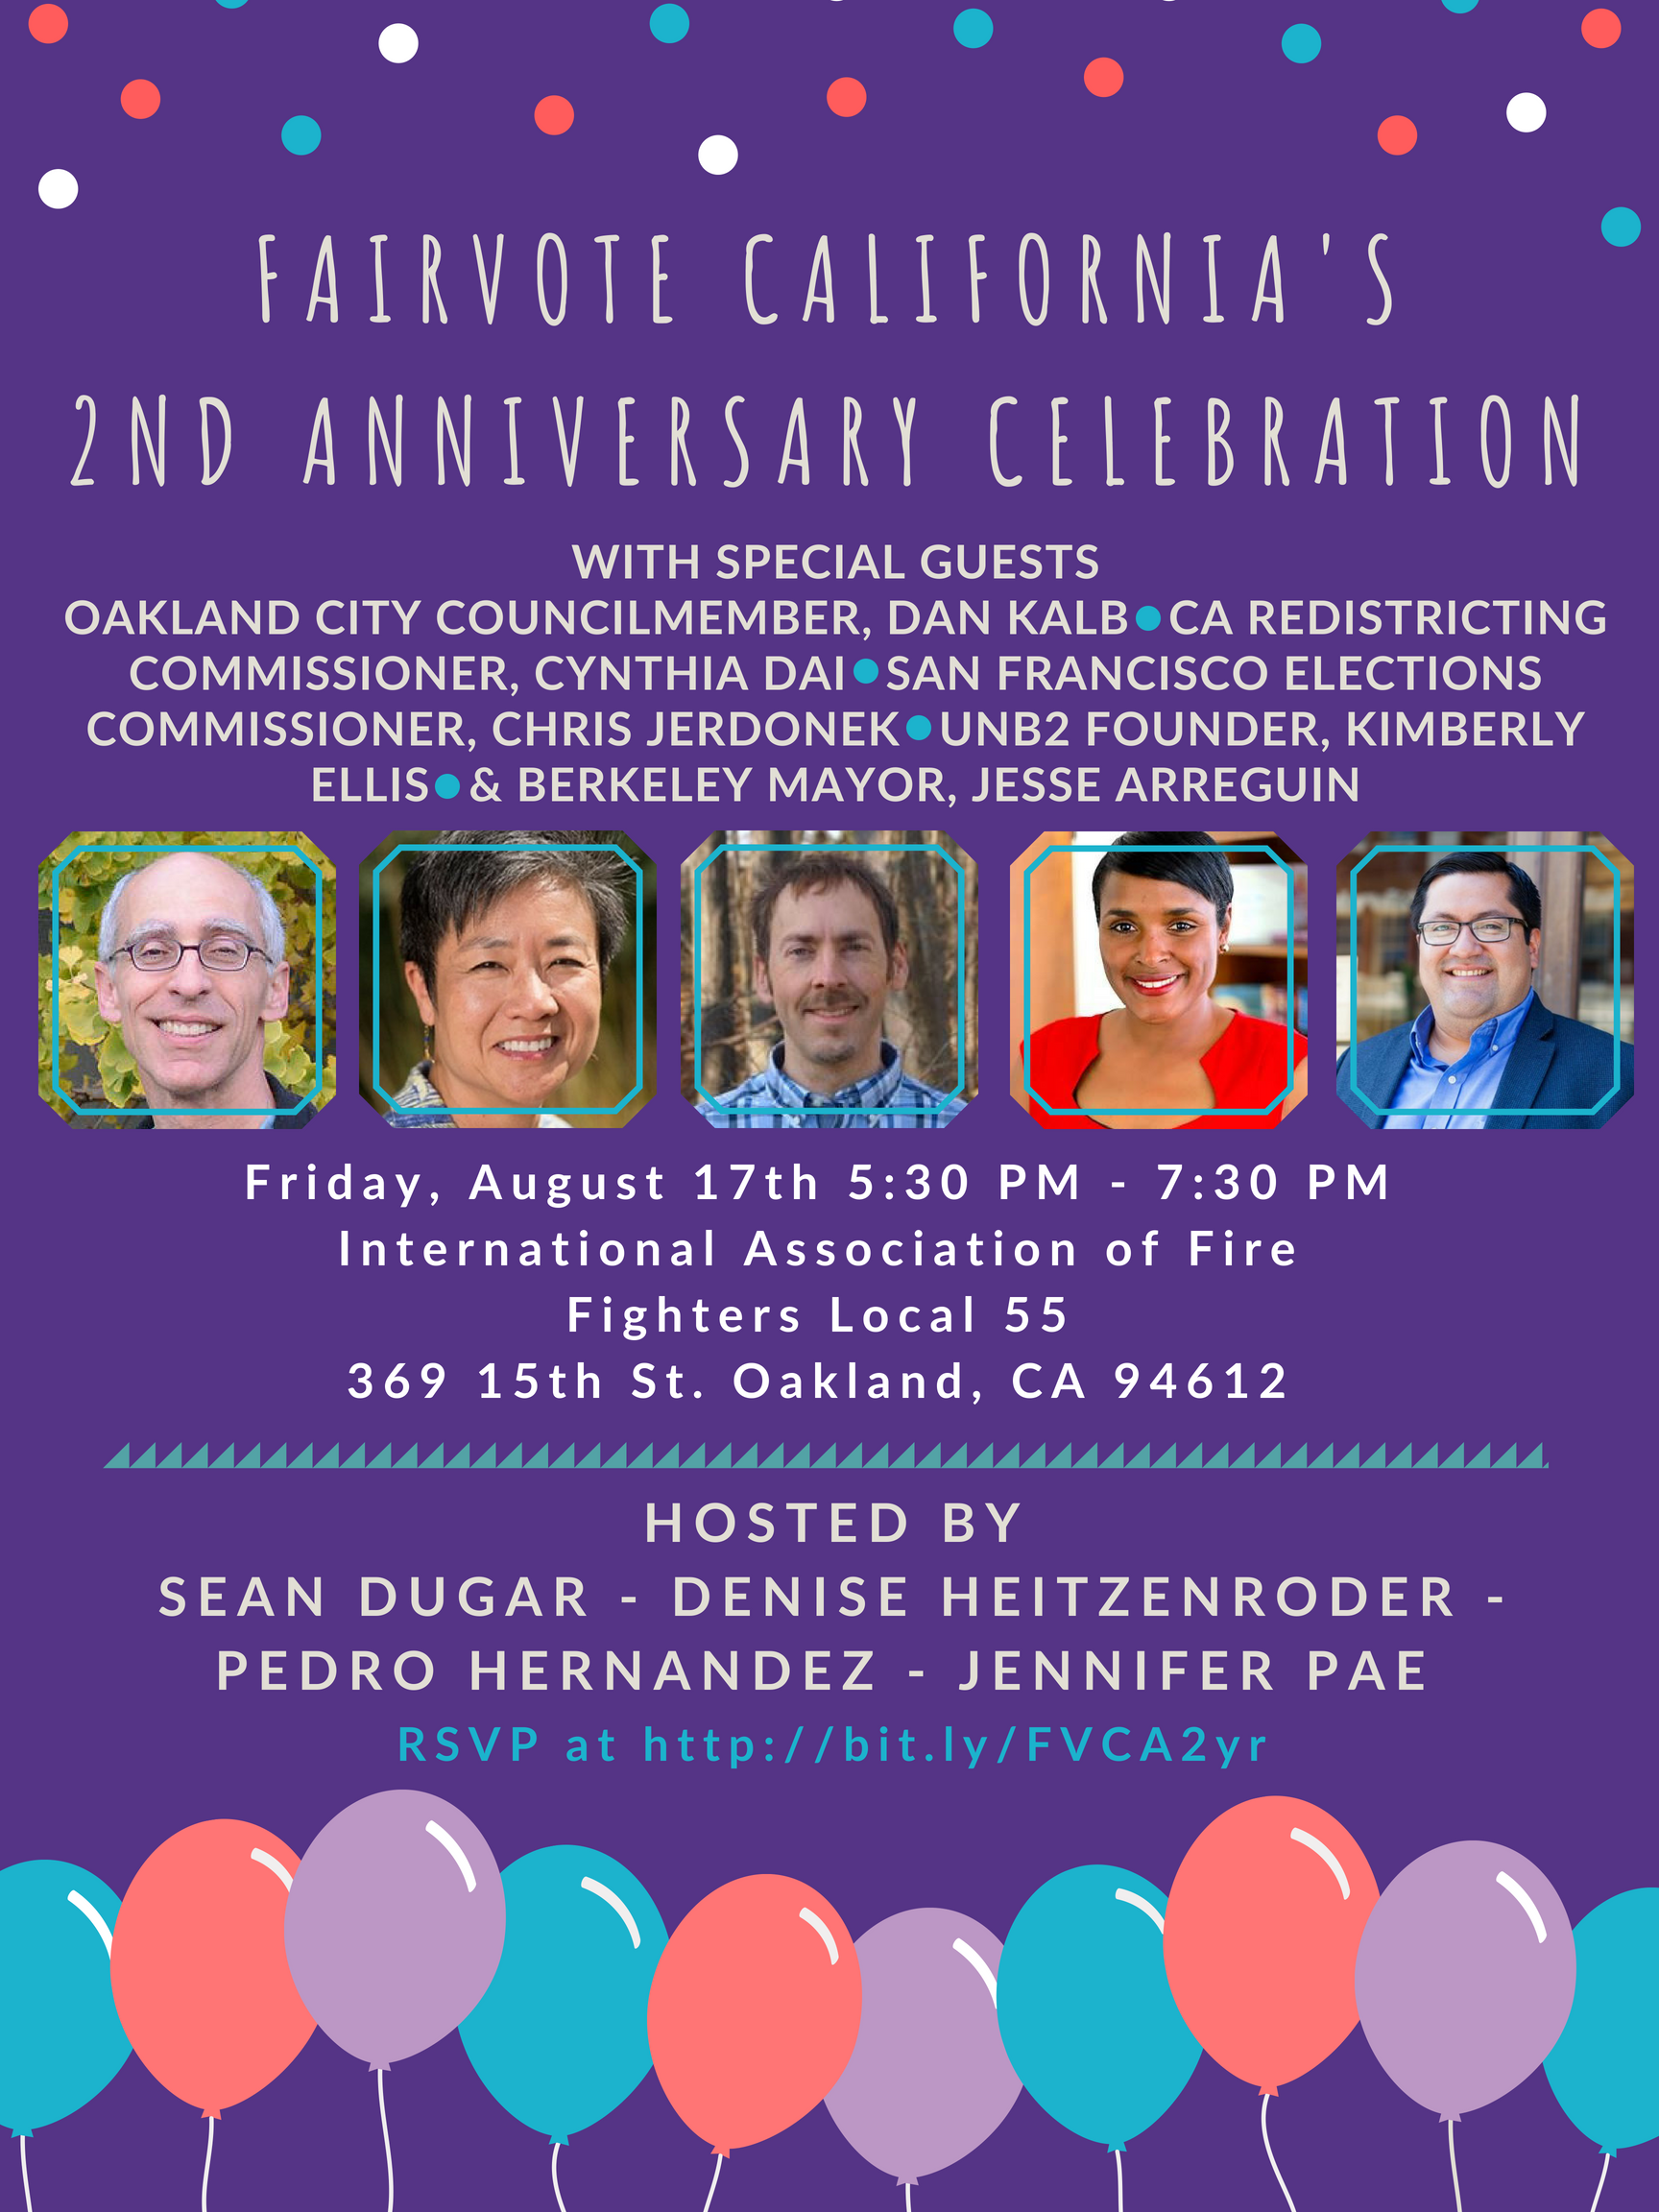 FVCA_2nd_Anniversary_Celebration_Flyer.png